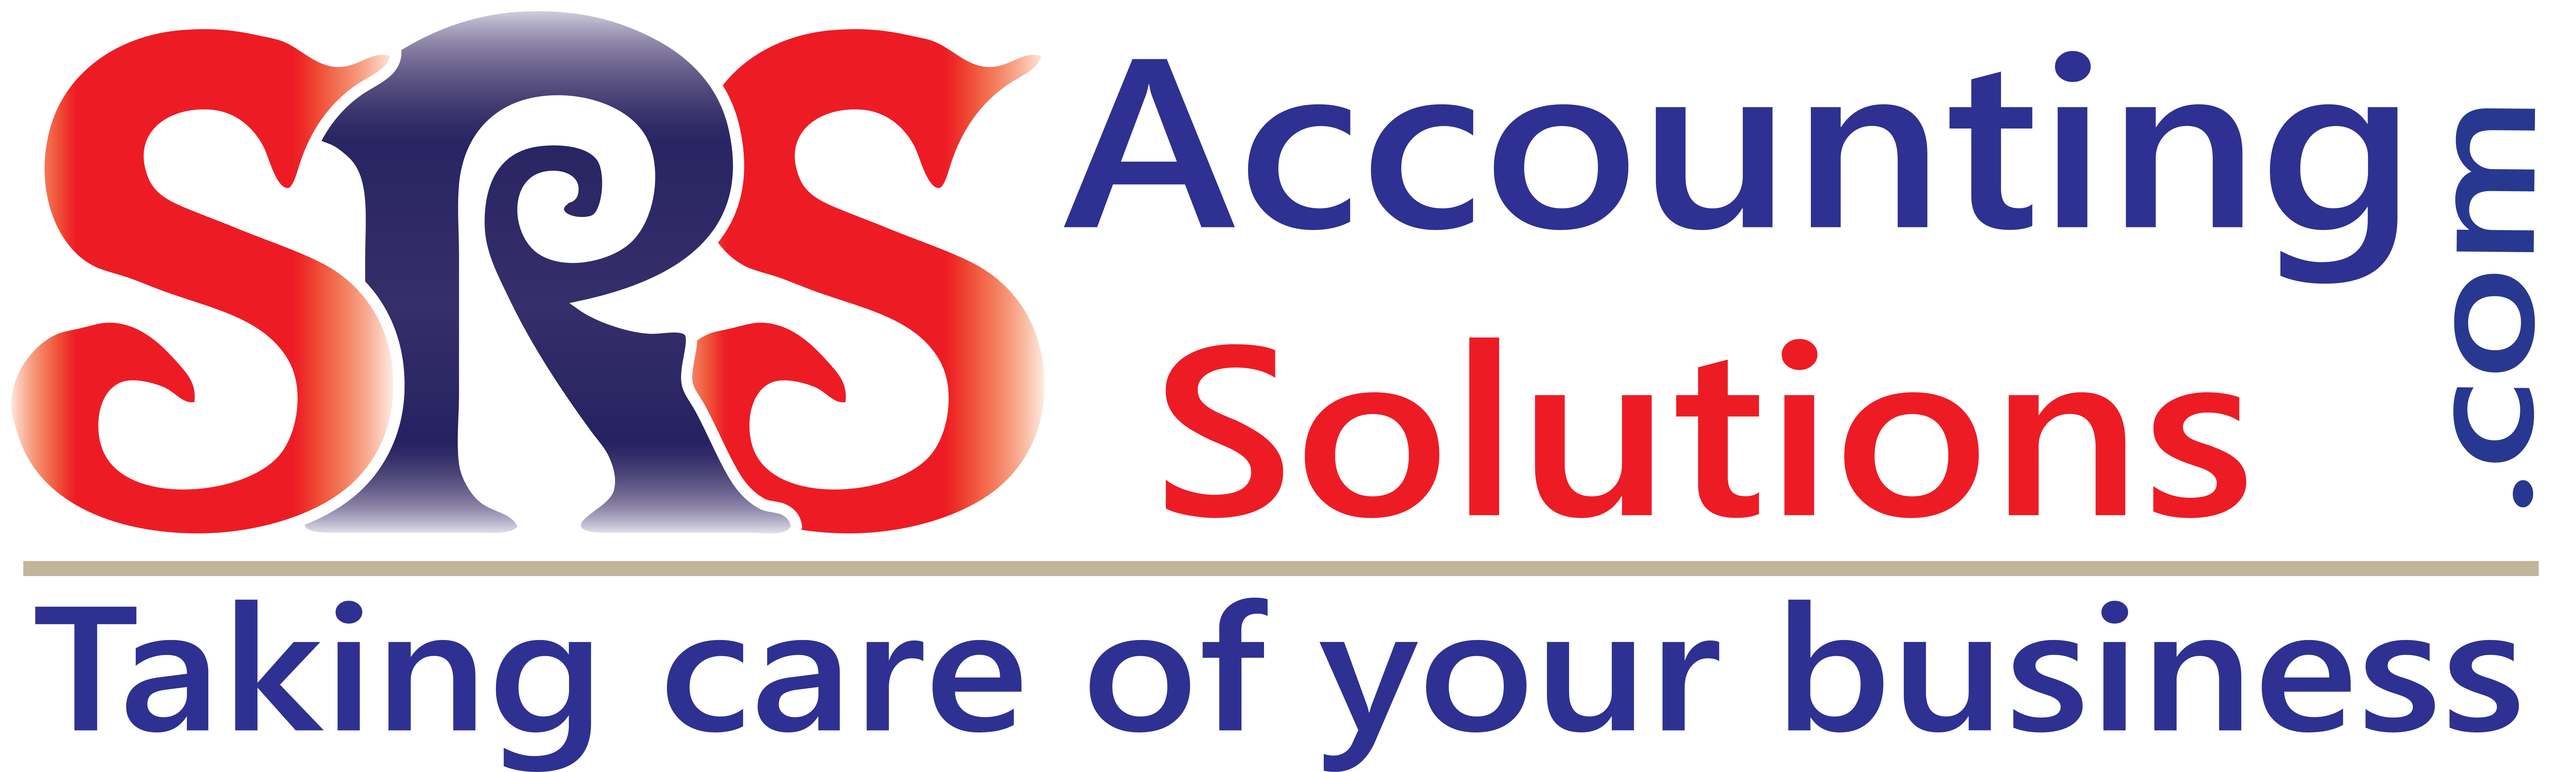 BookKeeping Services in Dubai | Online Payroll Management System